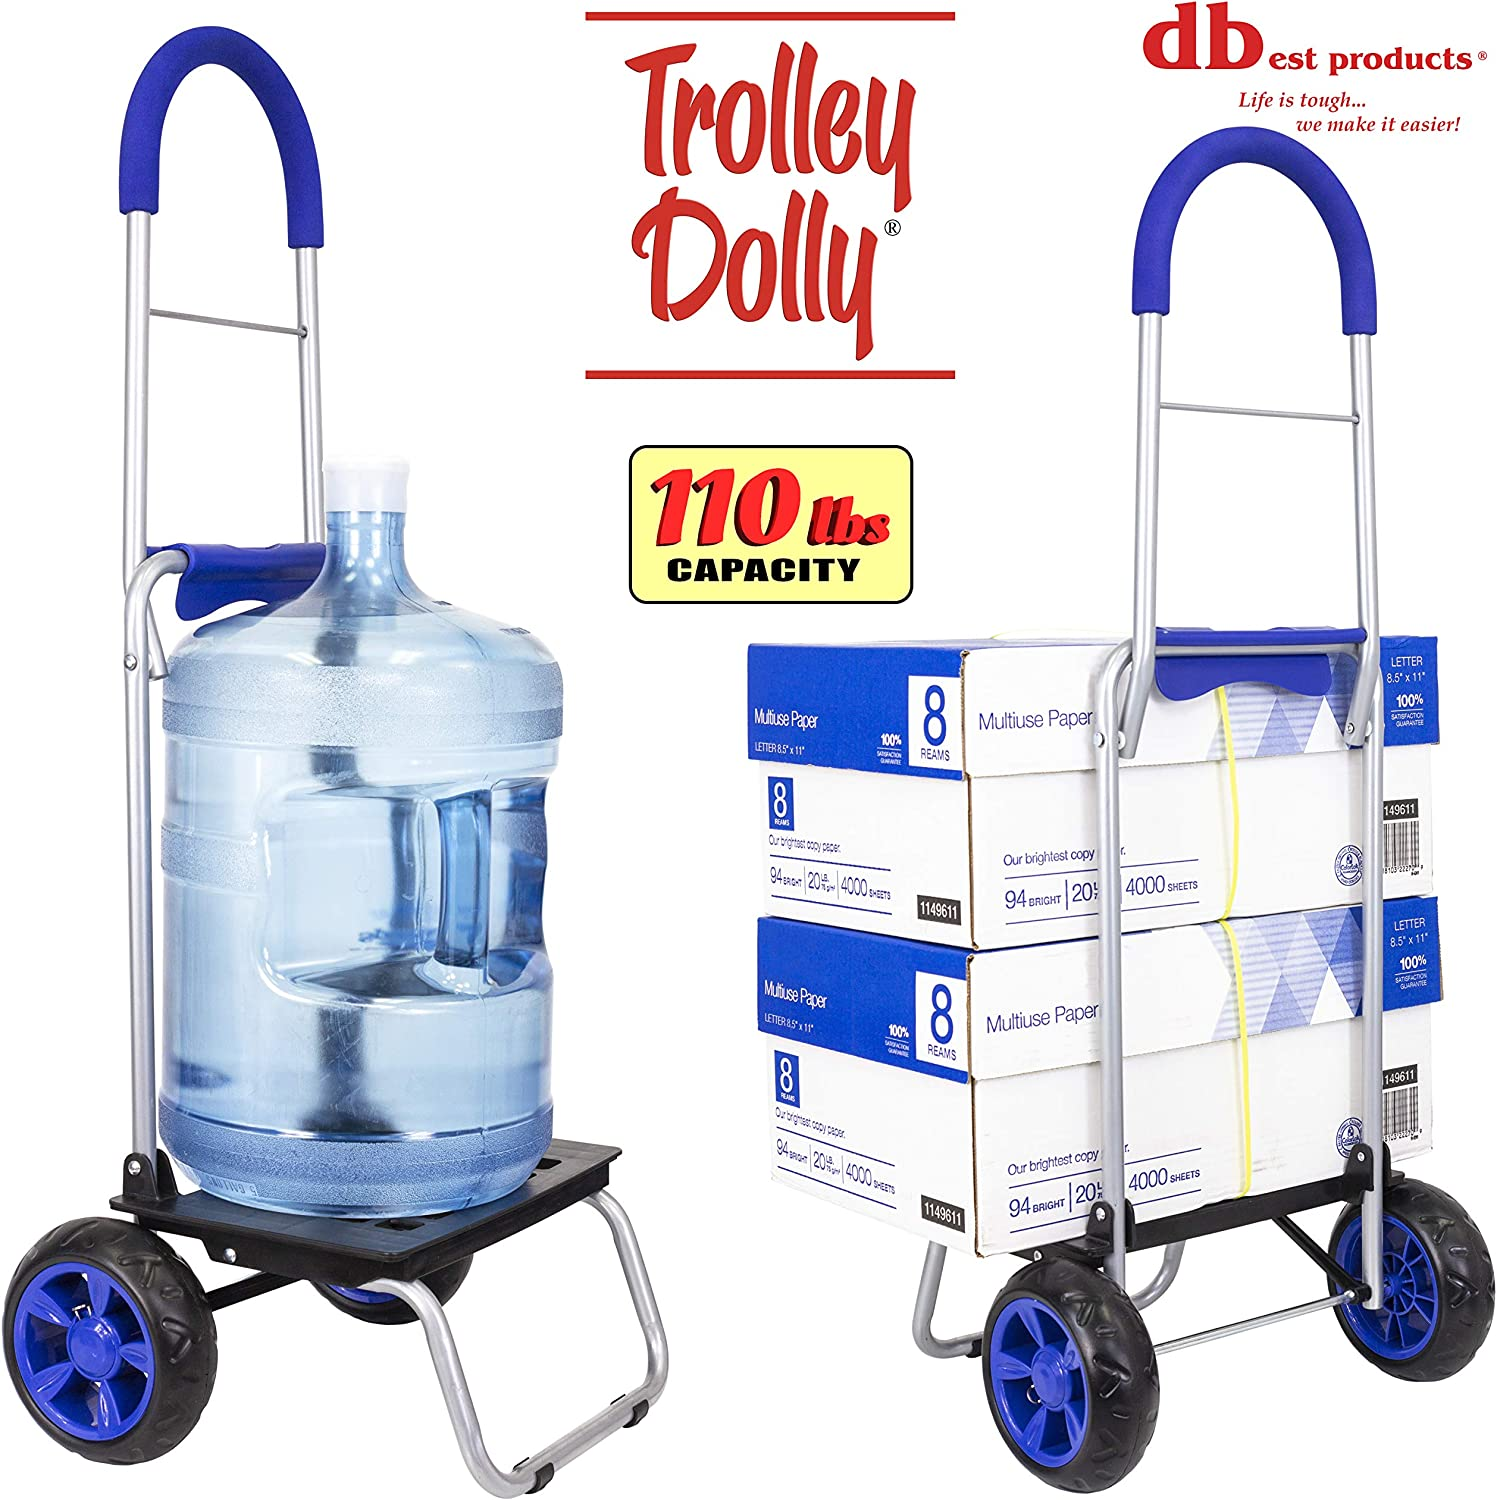 Chariot Dolly Gris Chevron Courses provisions Pliable Chariot